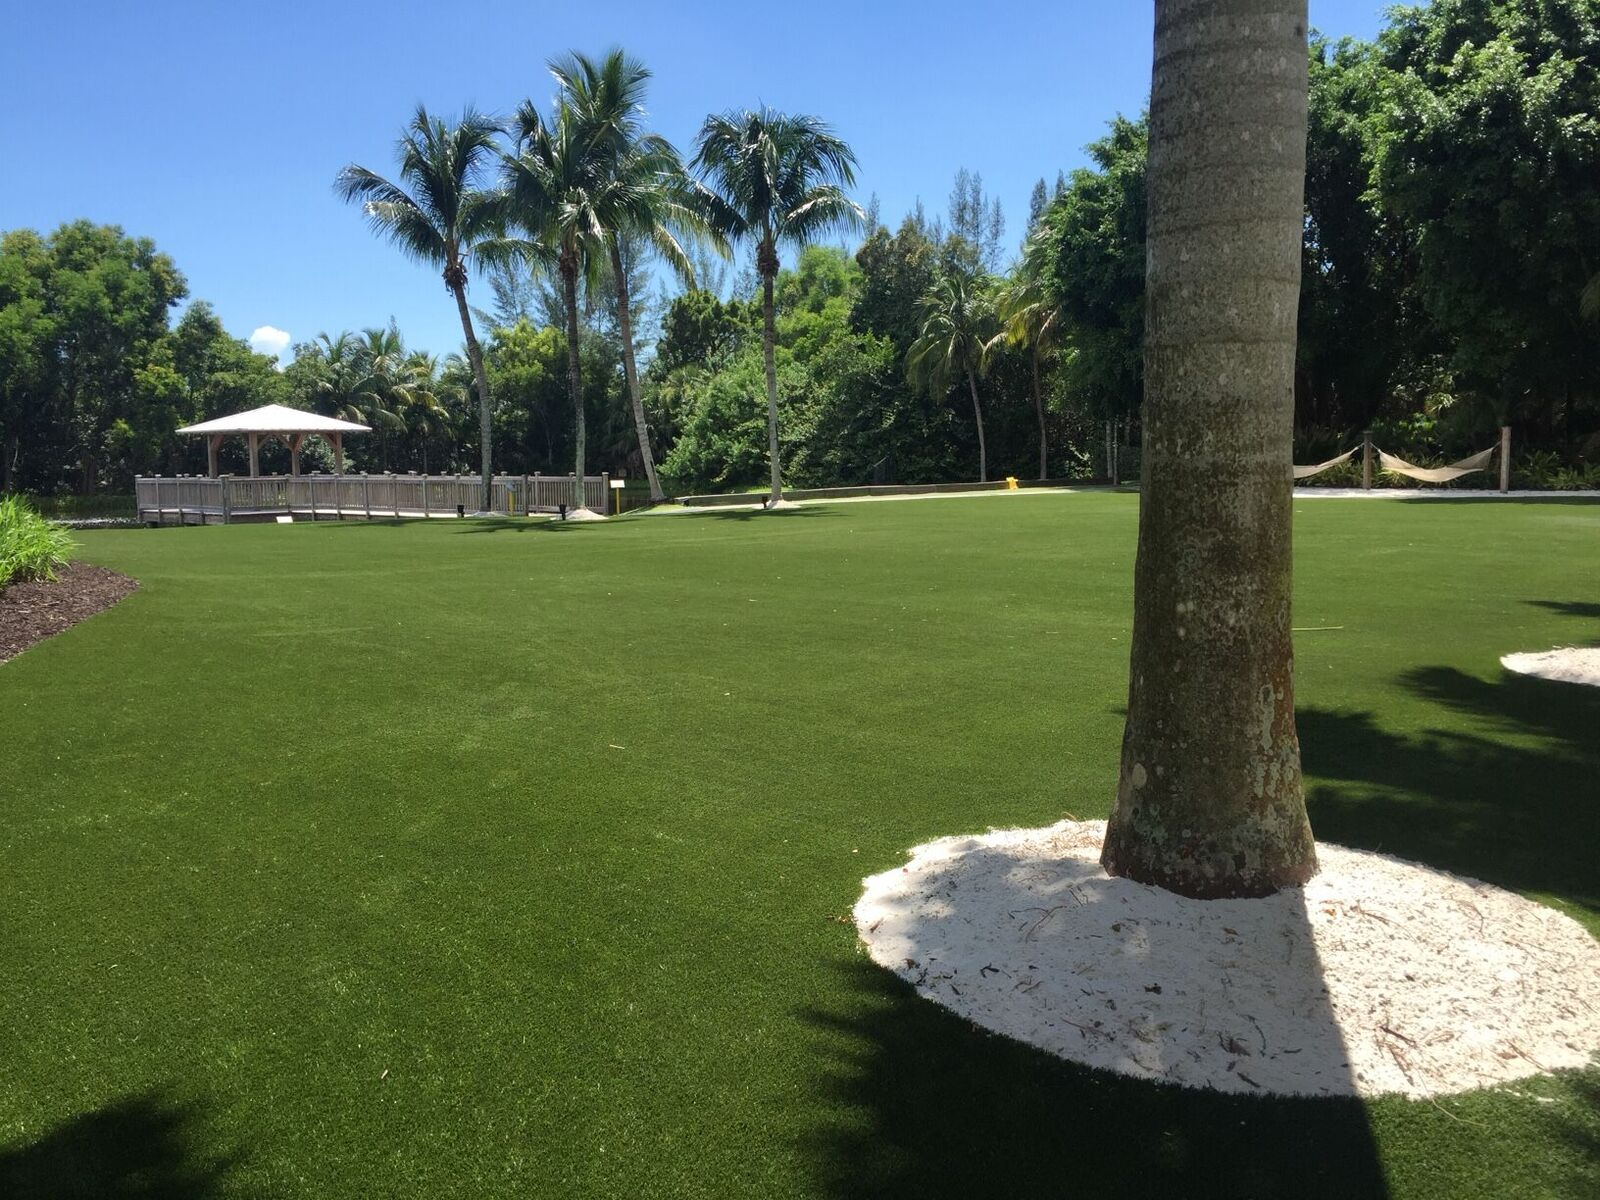 Where can I get artificial turf Orlando?